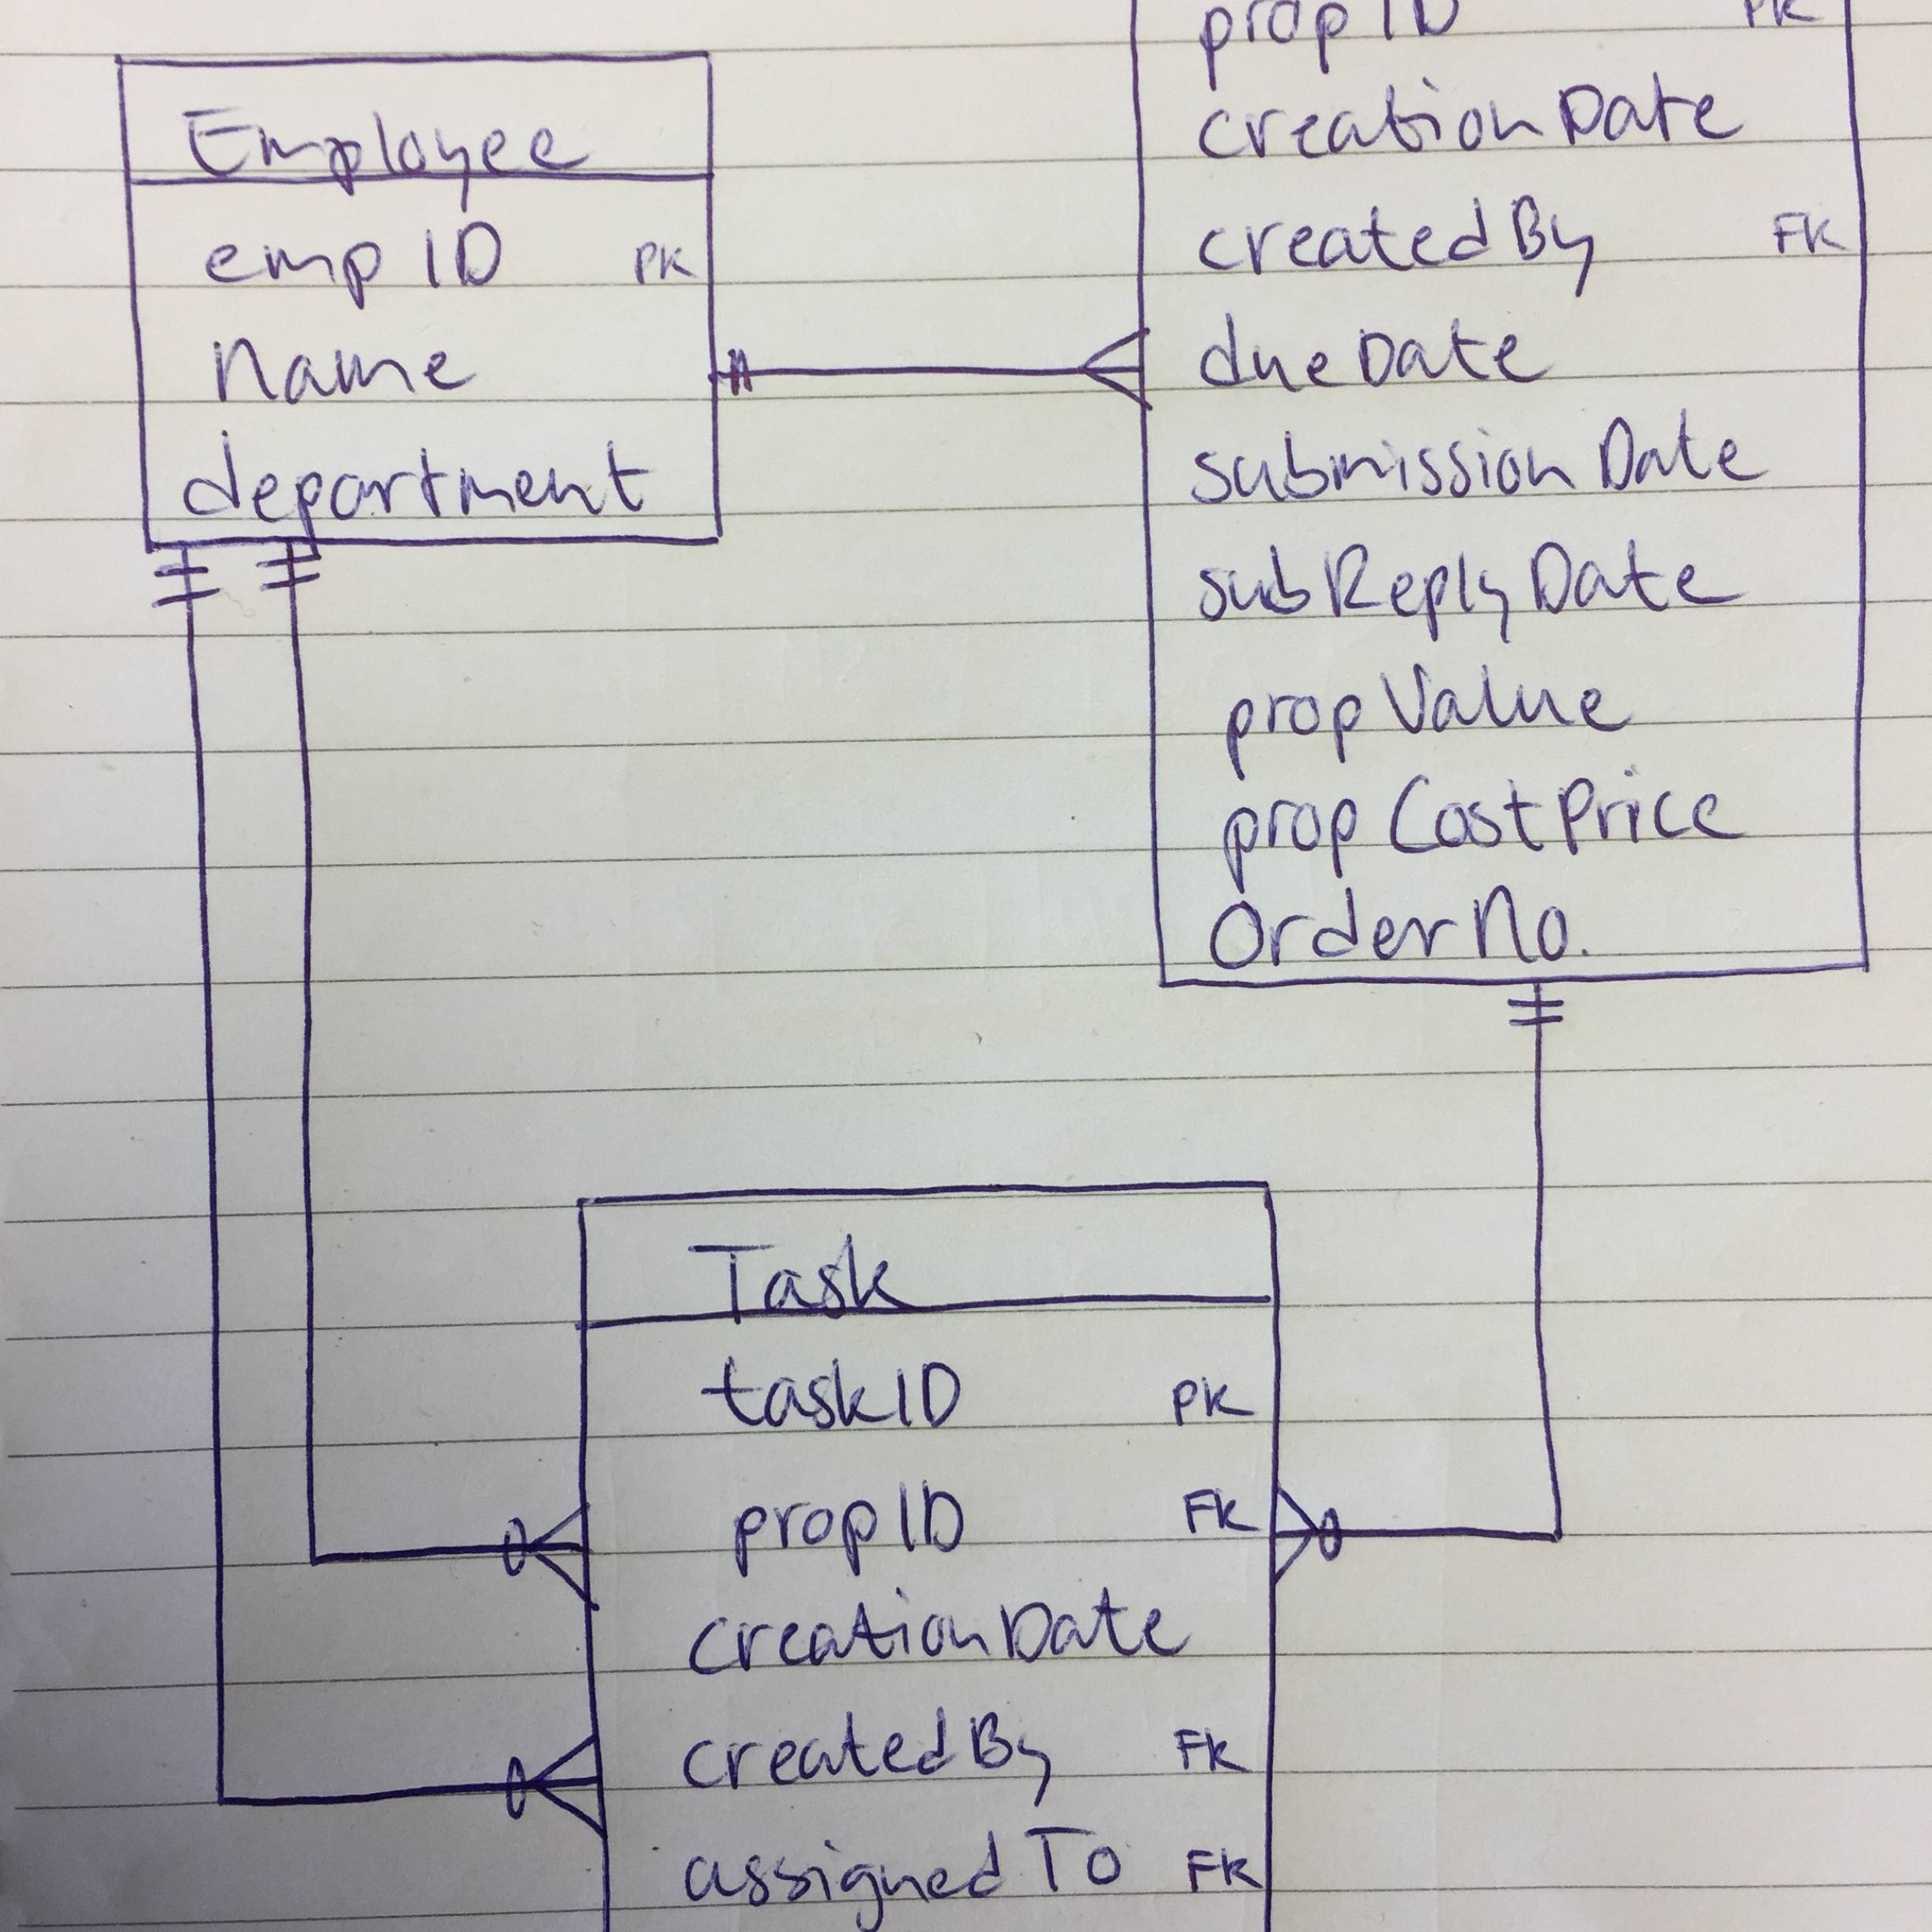 Multiple One To Many Relationships Between Tables - Database throughout One To One Relationship In Database With Diagram